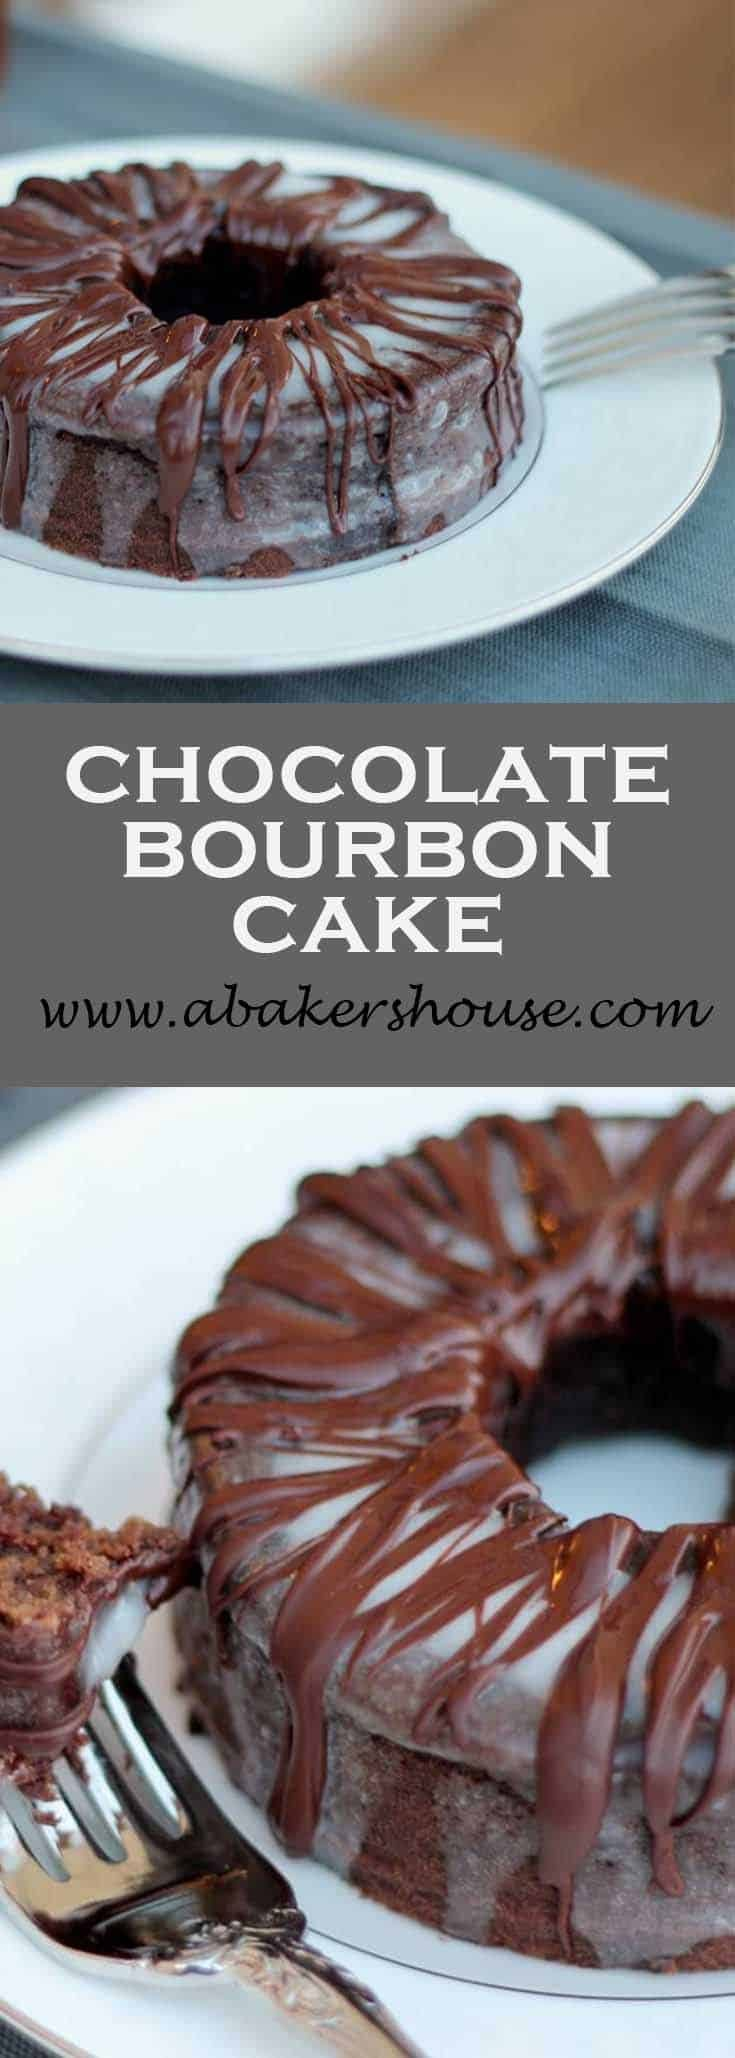 A dense, chocolate cake highlighted with bourbon makes this a grown up chocolate dessert. Top with a glaze AND a drizzle of chocolate to take this Chocolate Bourbon Mini Bundt over the top! #bundt #minibundt #espresso #bourbon #abakershouse #chocolatecake